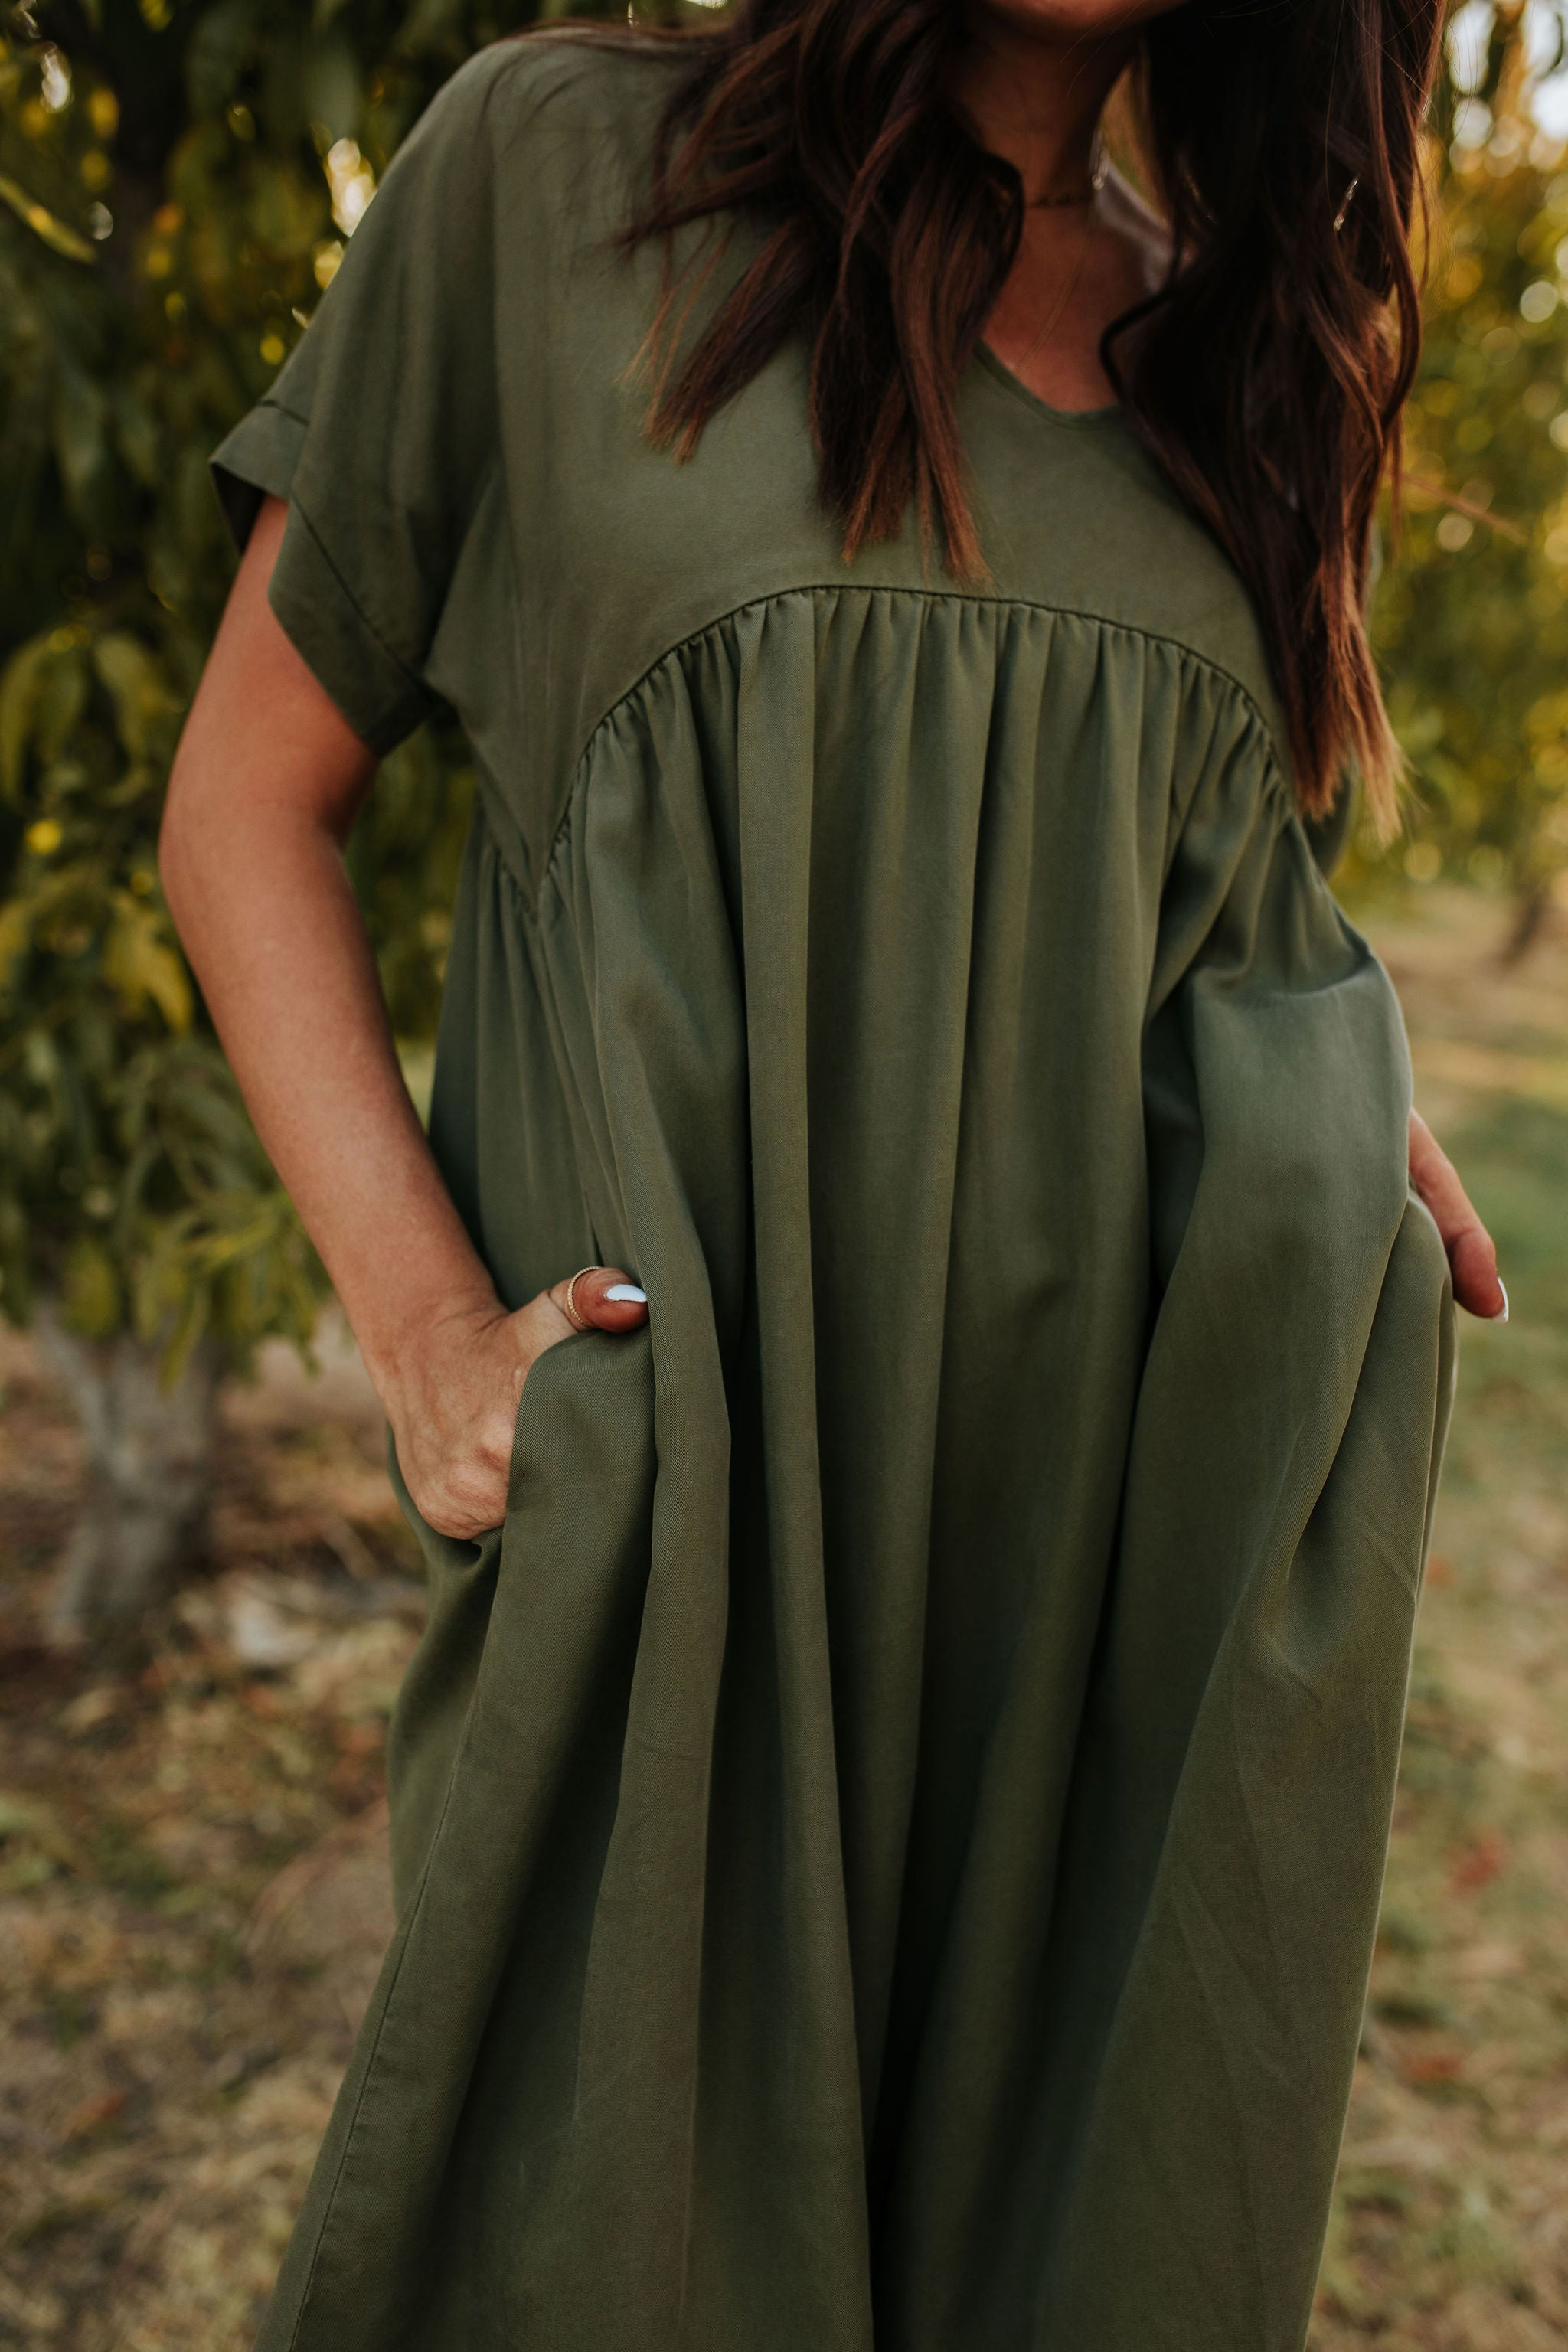 THE FALL FEELS BABYDOLL DRESS IN OLIVE